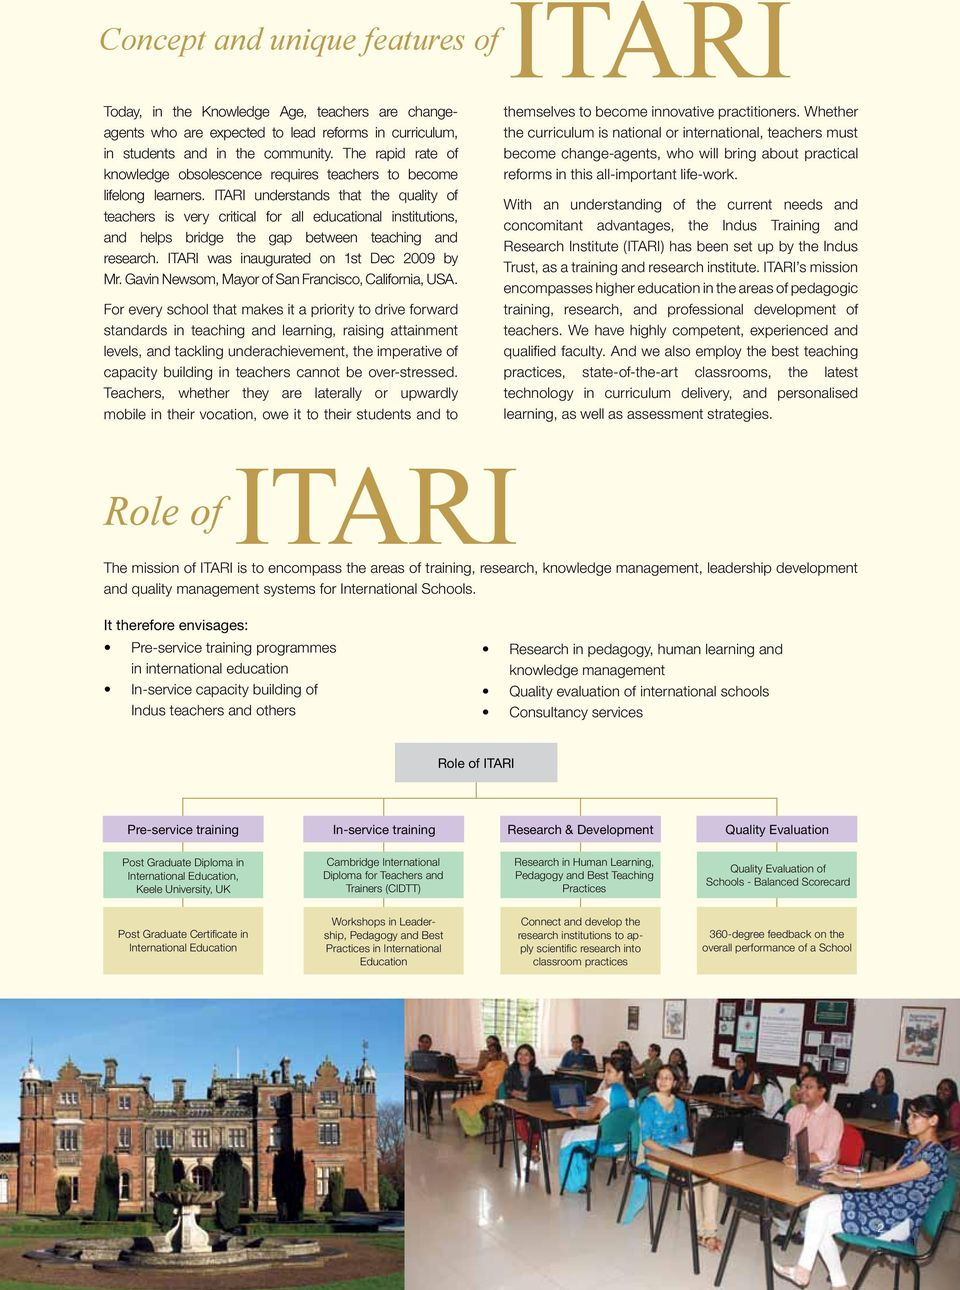 ITARI understands that the quality of teachers is very critical for all educational institutions, and helps bridge the gap between teaching and research. ITARI was inaugurated on 1st Dec 2009 by Mr.